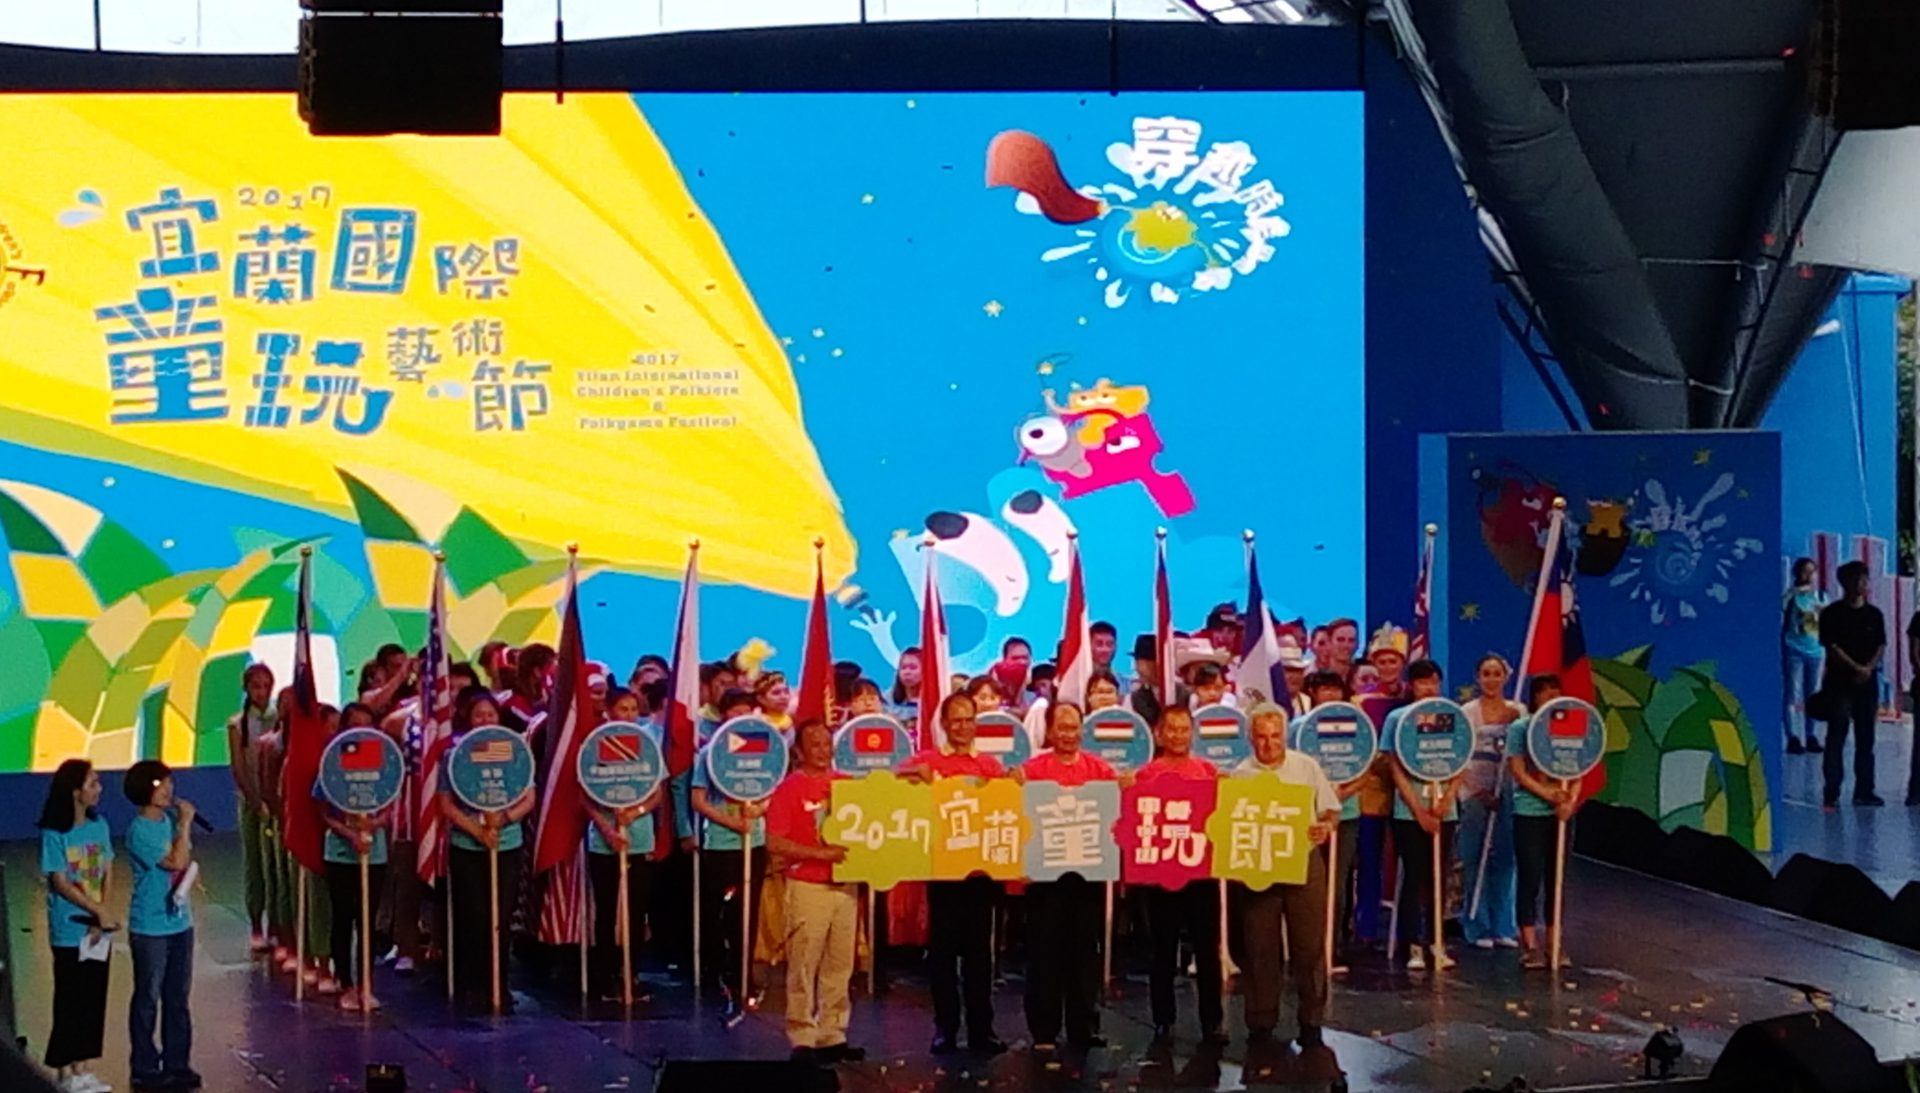 Some of the domestic and foreign performing groups participate in the opening ceremony of the 22nd YICFFF. (Image: Juliet Fu/ Vision Times)